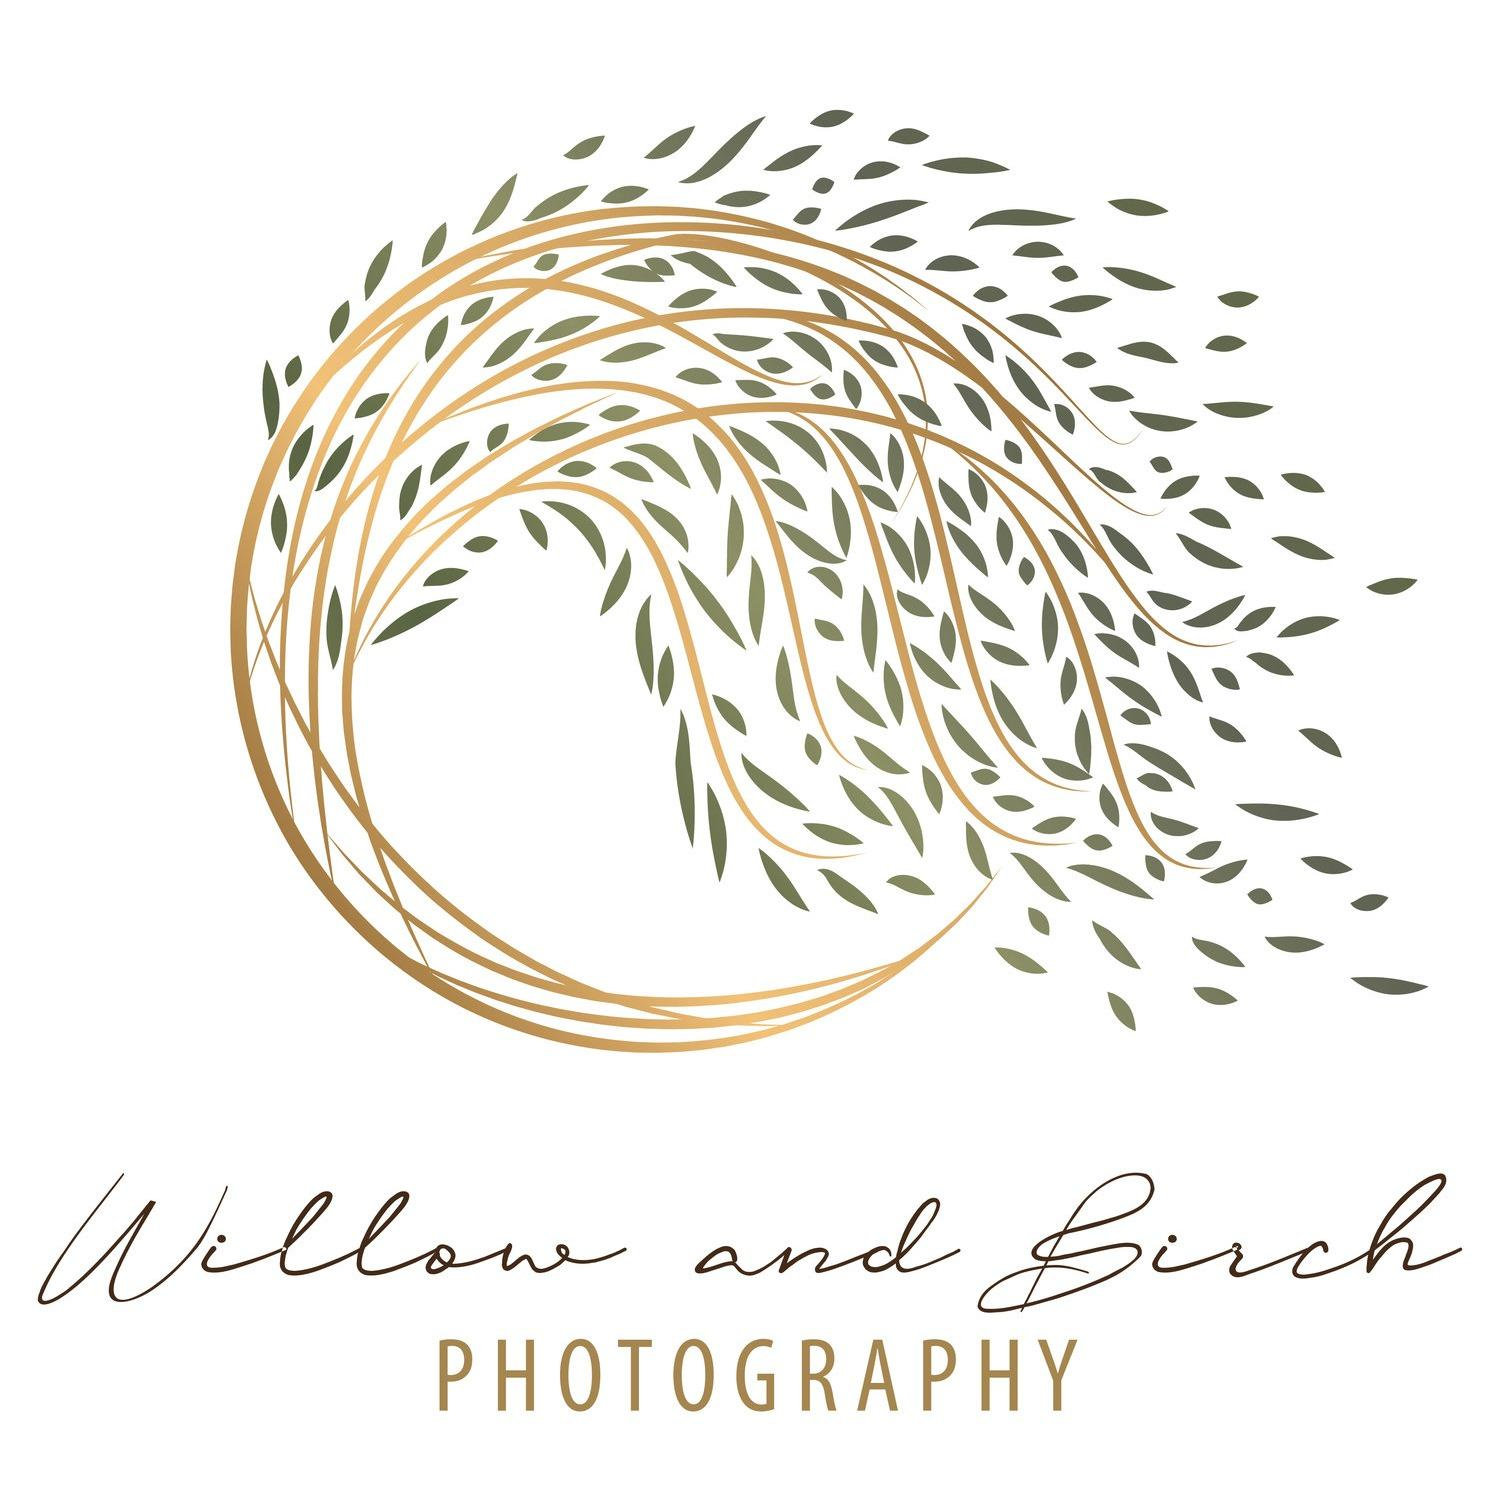 Willow and Birch Photography LLC image 3